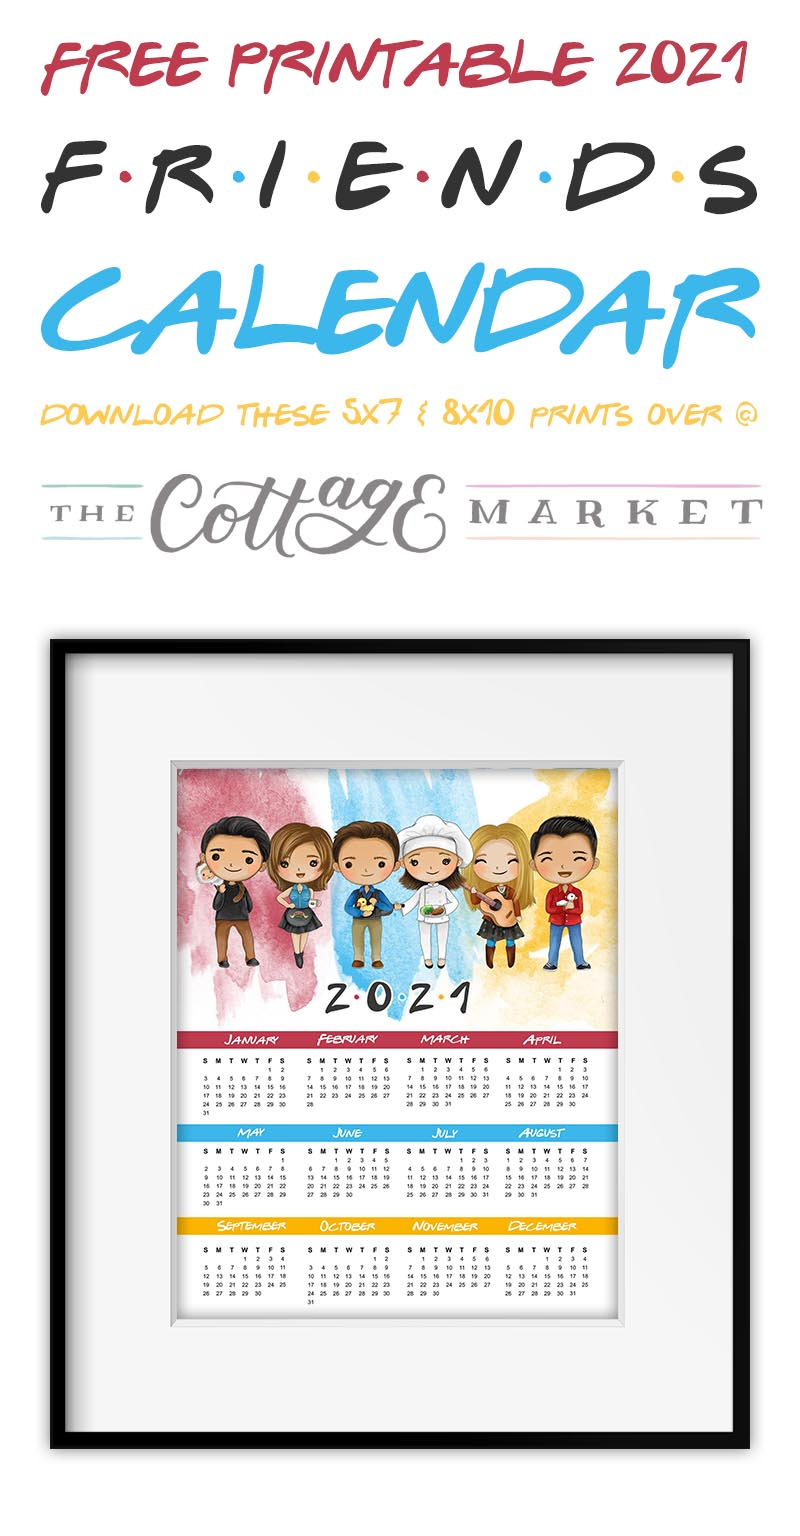 https://thecottagemarket.com/wp-content/uploads/2020/10/tcm-2021-Friends-onepage-calendar-t-1.jpg